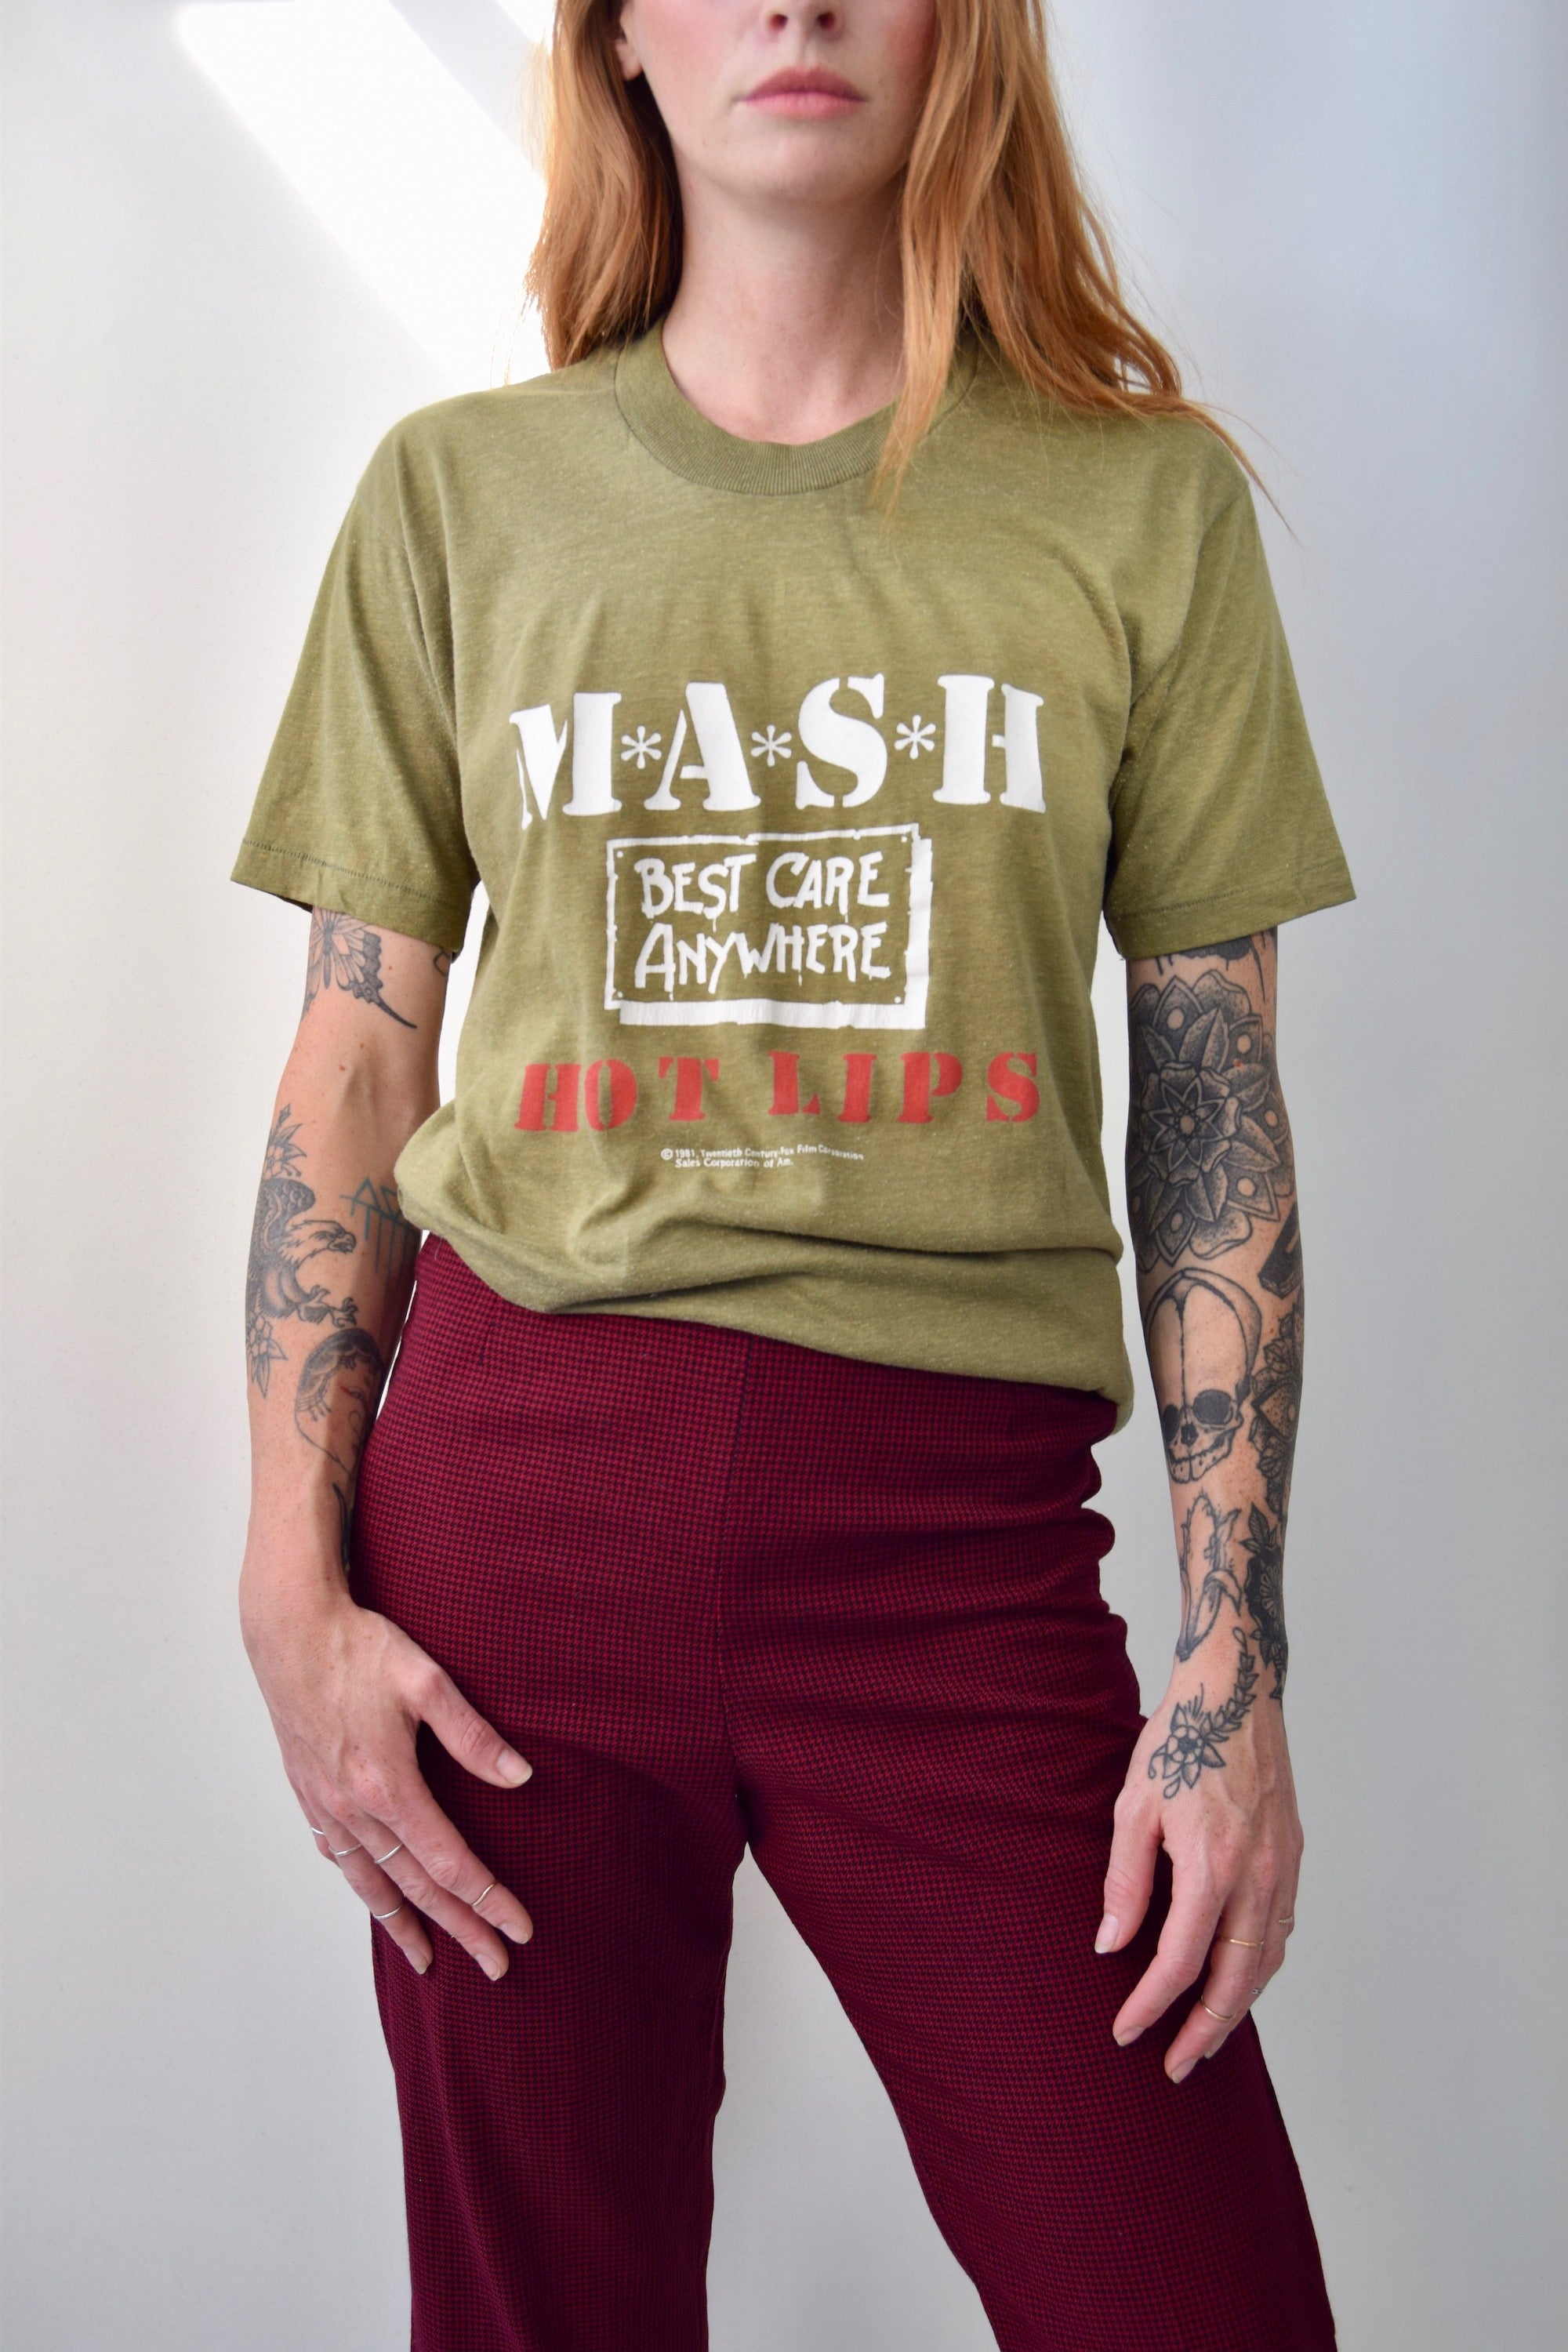 1981 MASH Best Care Anywhere Hot Lips T-Shirt